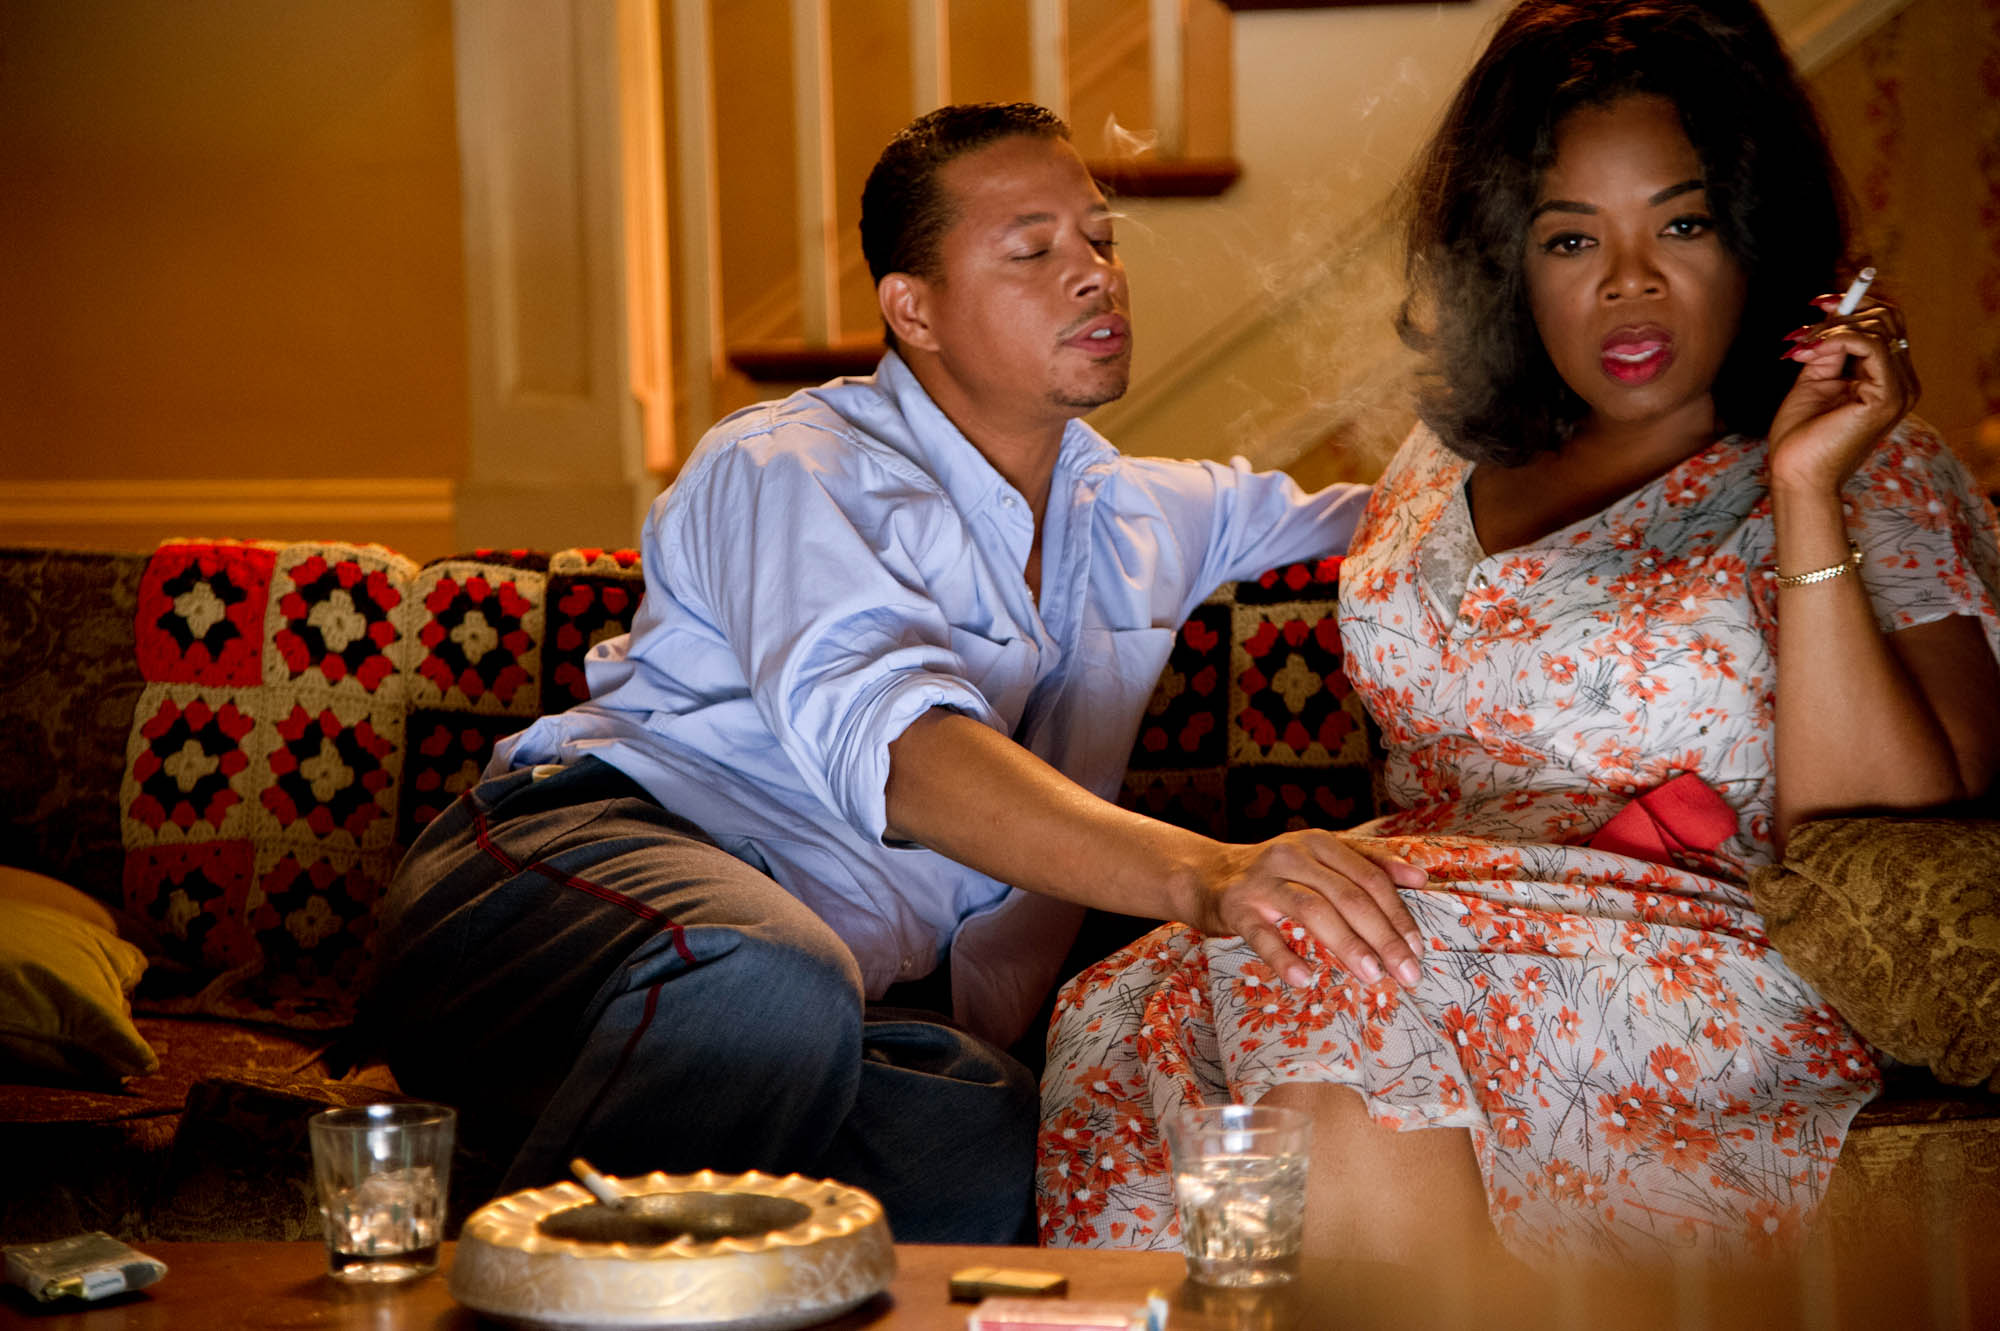 Oprah Winfrey On Working With Lee Daniels On 'The Butler': 'If he had his way, I would have been naked, saying the f-word many times over.'